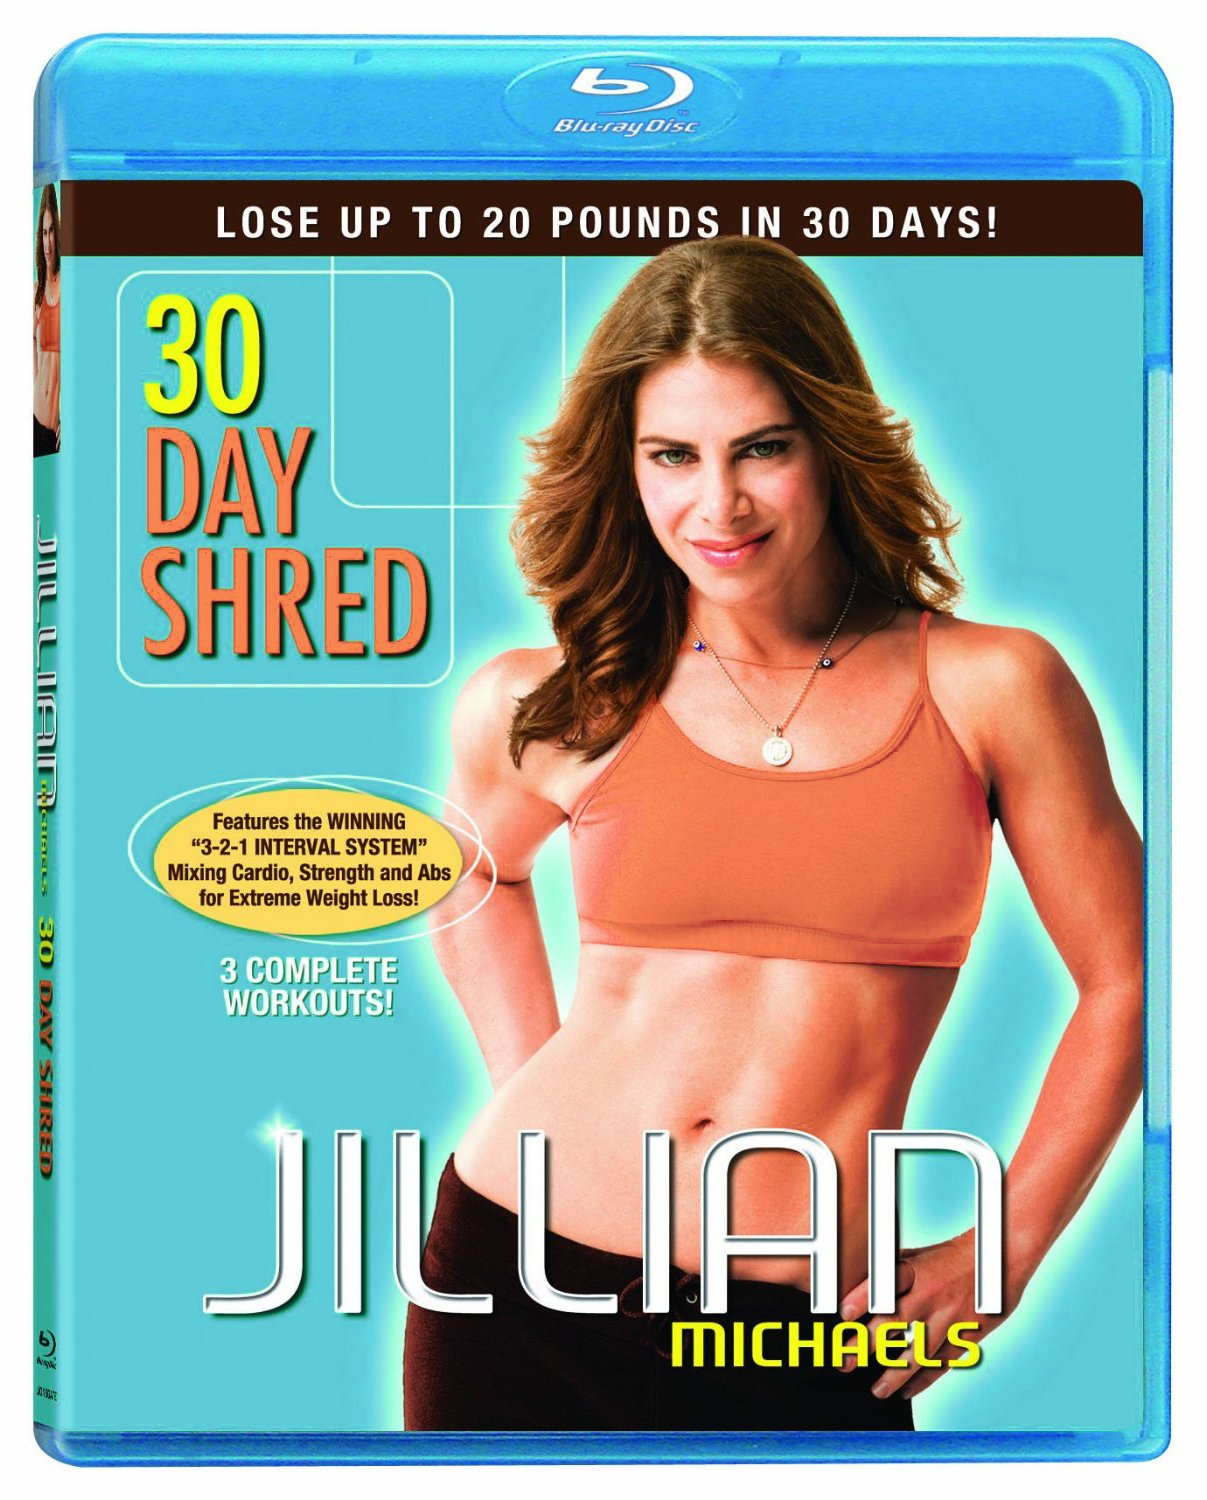 Jillian Michaels: Sales for sale OFFicial 30 Day Shred